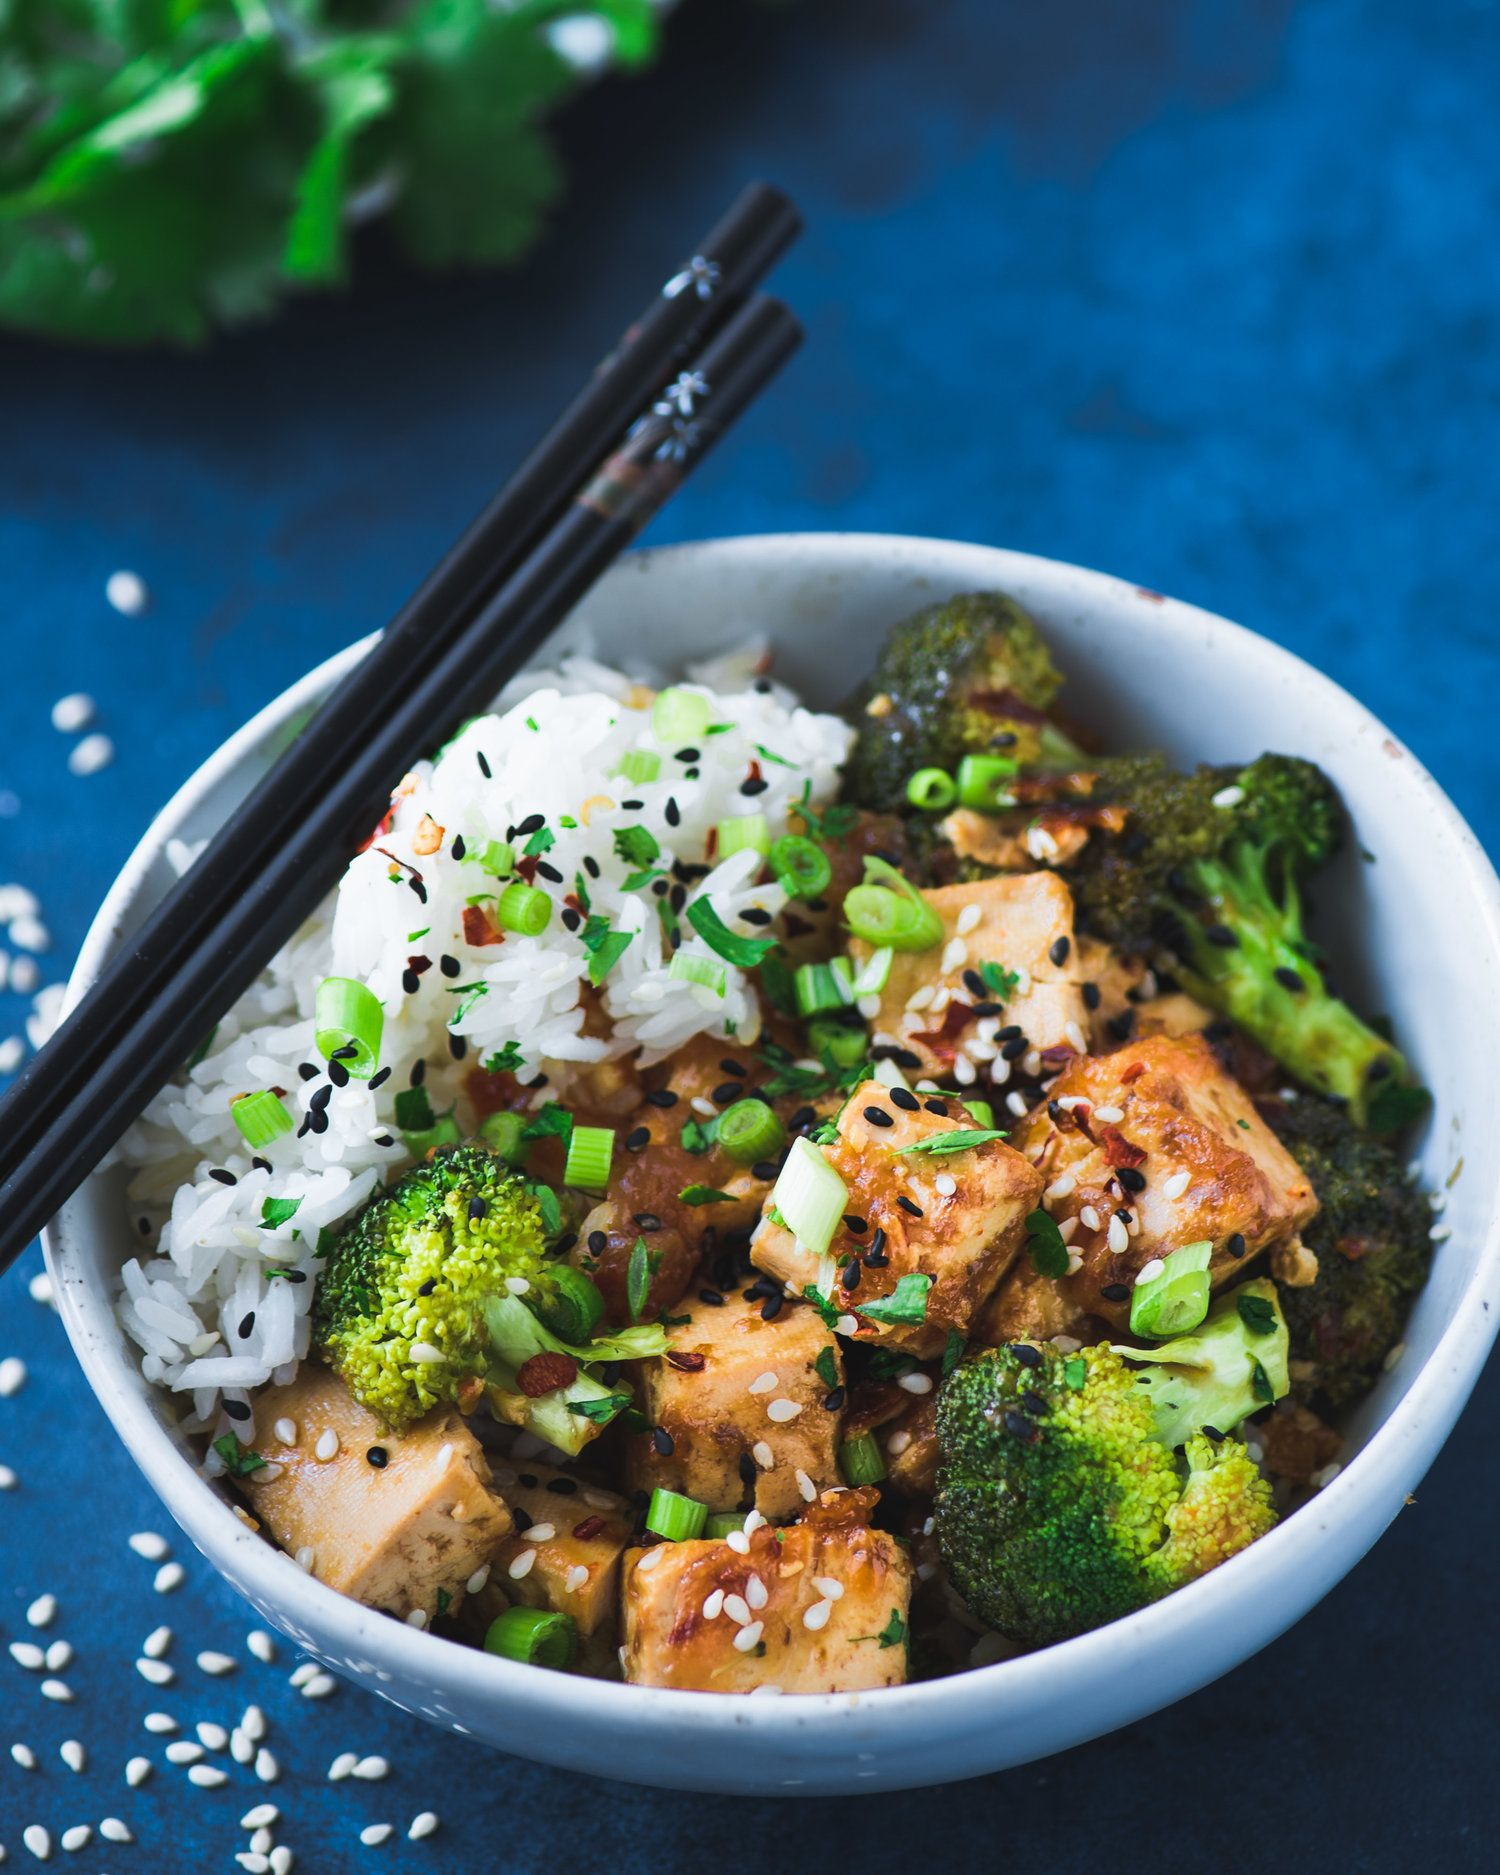 Chinese Takeout Style Tofu And Broccoli Recipe From The Vegan Instant Pot Cookbook Rainbow Plant Life Instant Pot Cookbook Broccoli Recipes Vegan Instant Pot Recipes